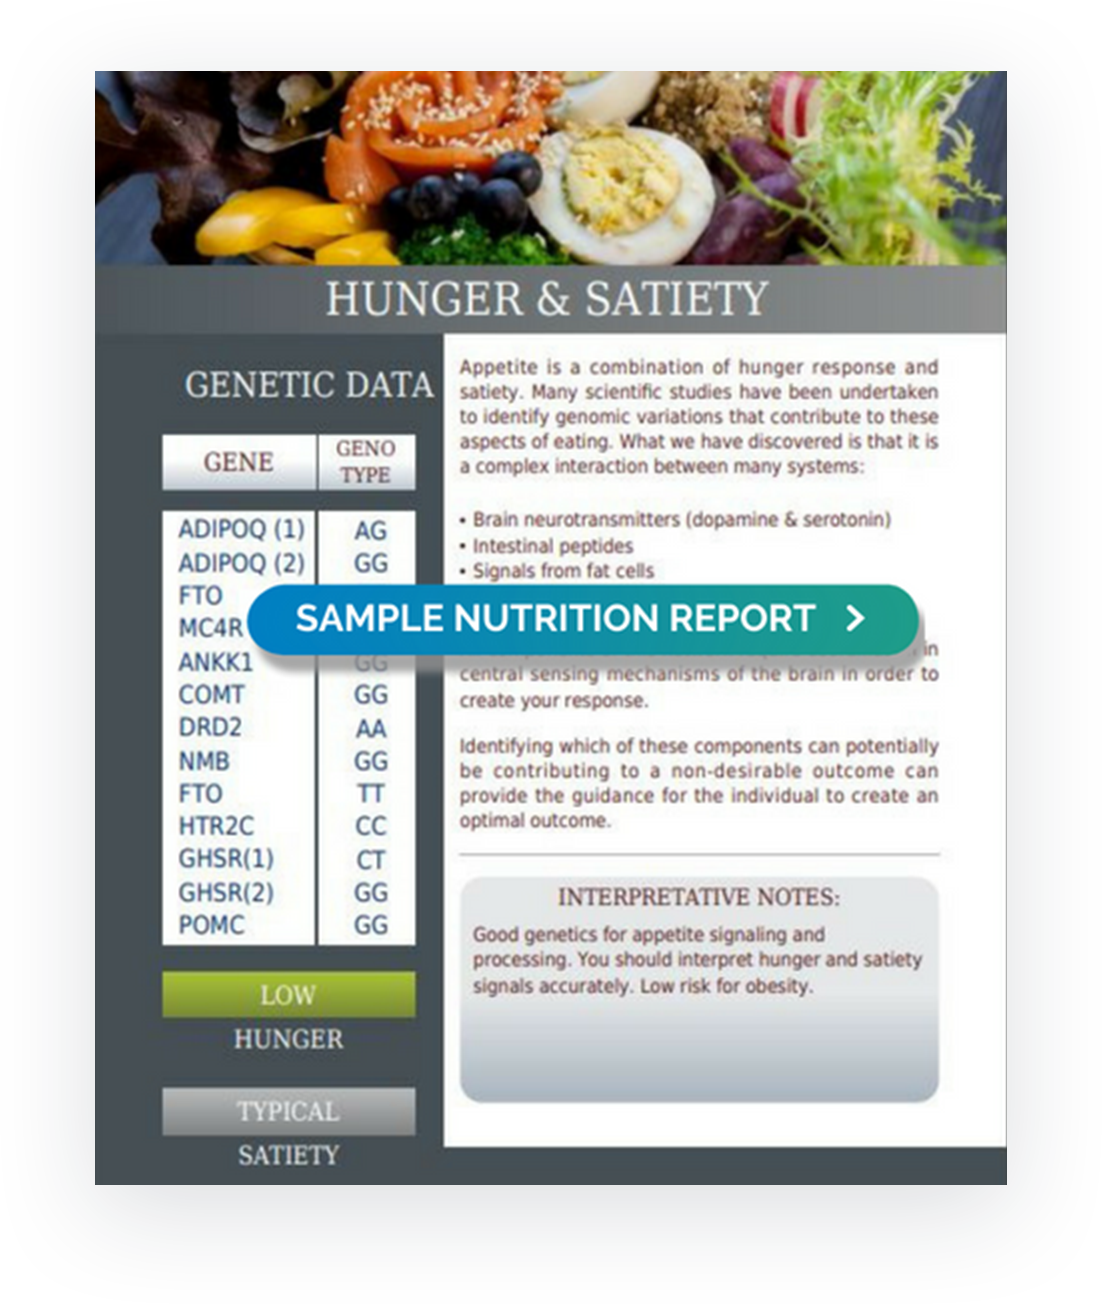 Sample_Nutrition_Report